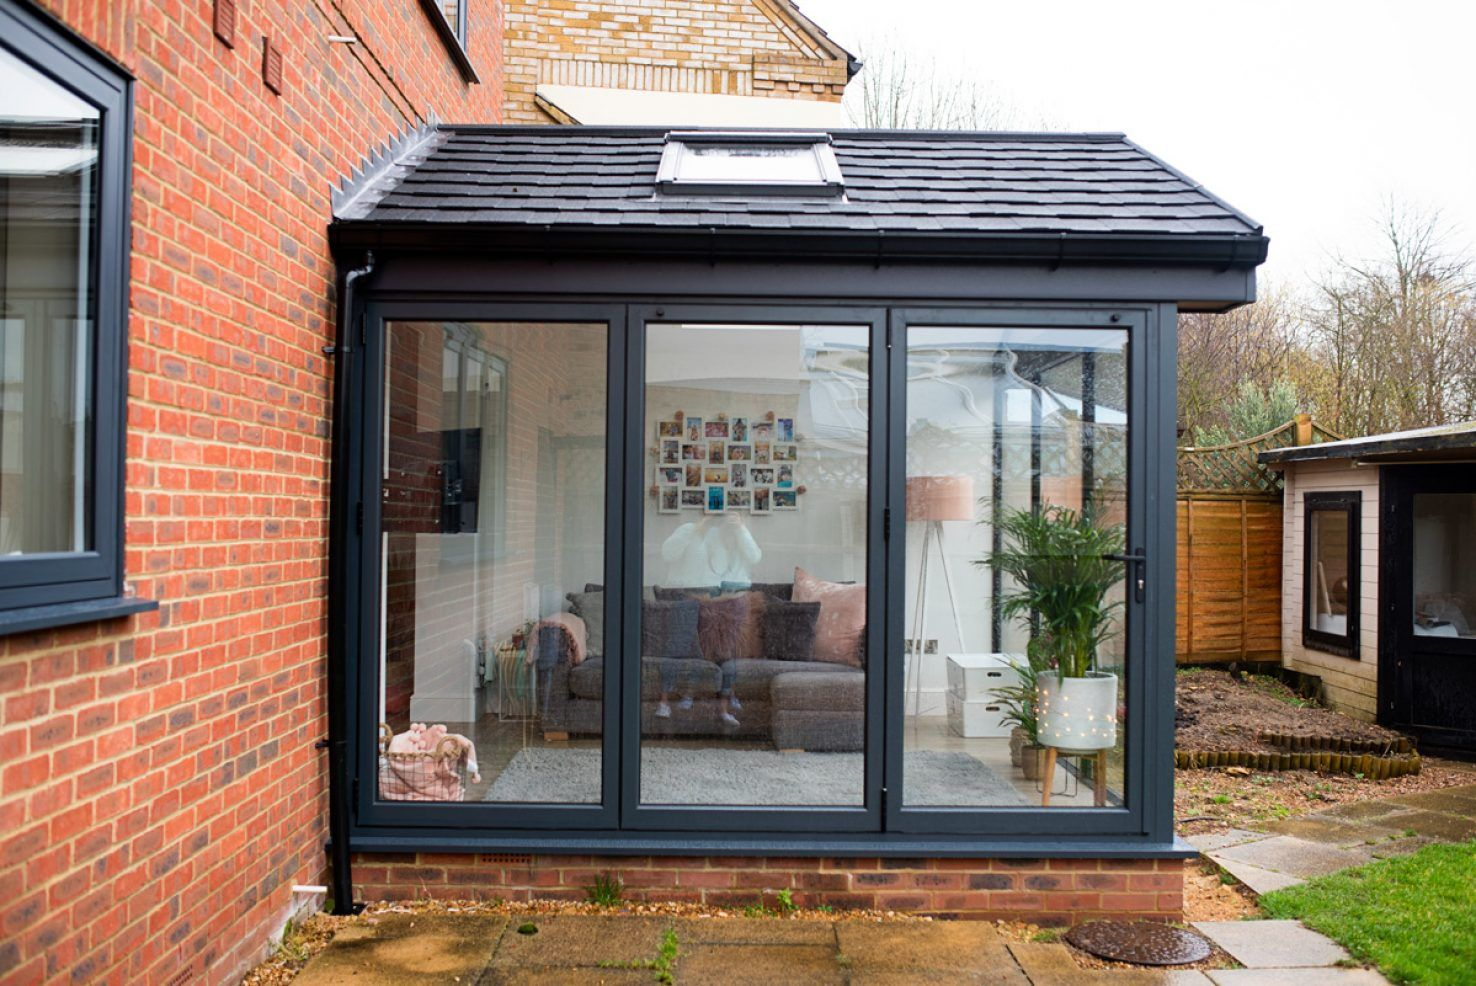 Our Modern Conservatory Extension Before And After Home Renovation Project 5 In 2020 Garden Room Extensions House Extension Design Modern Conservatory